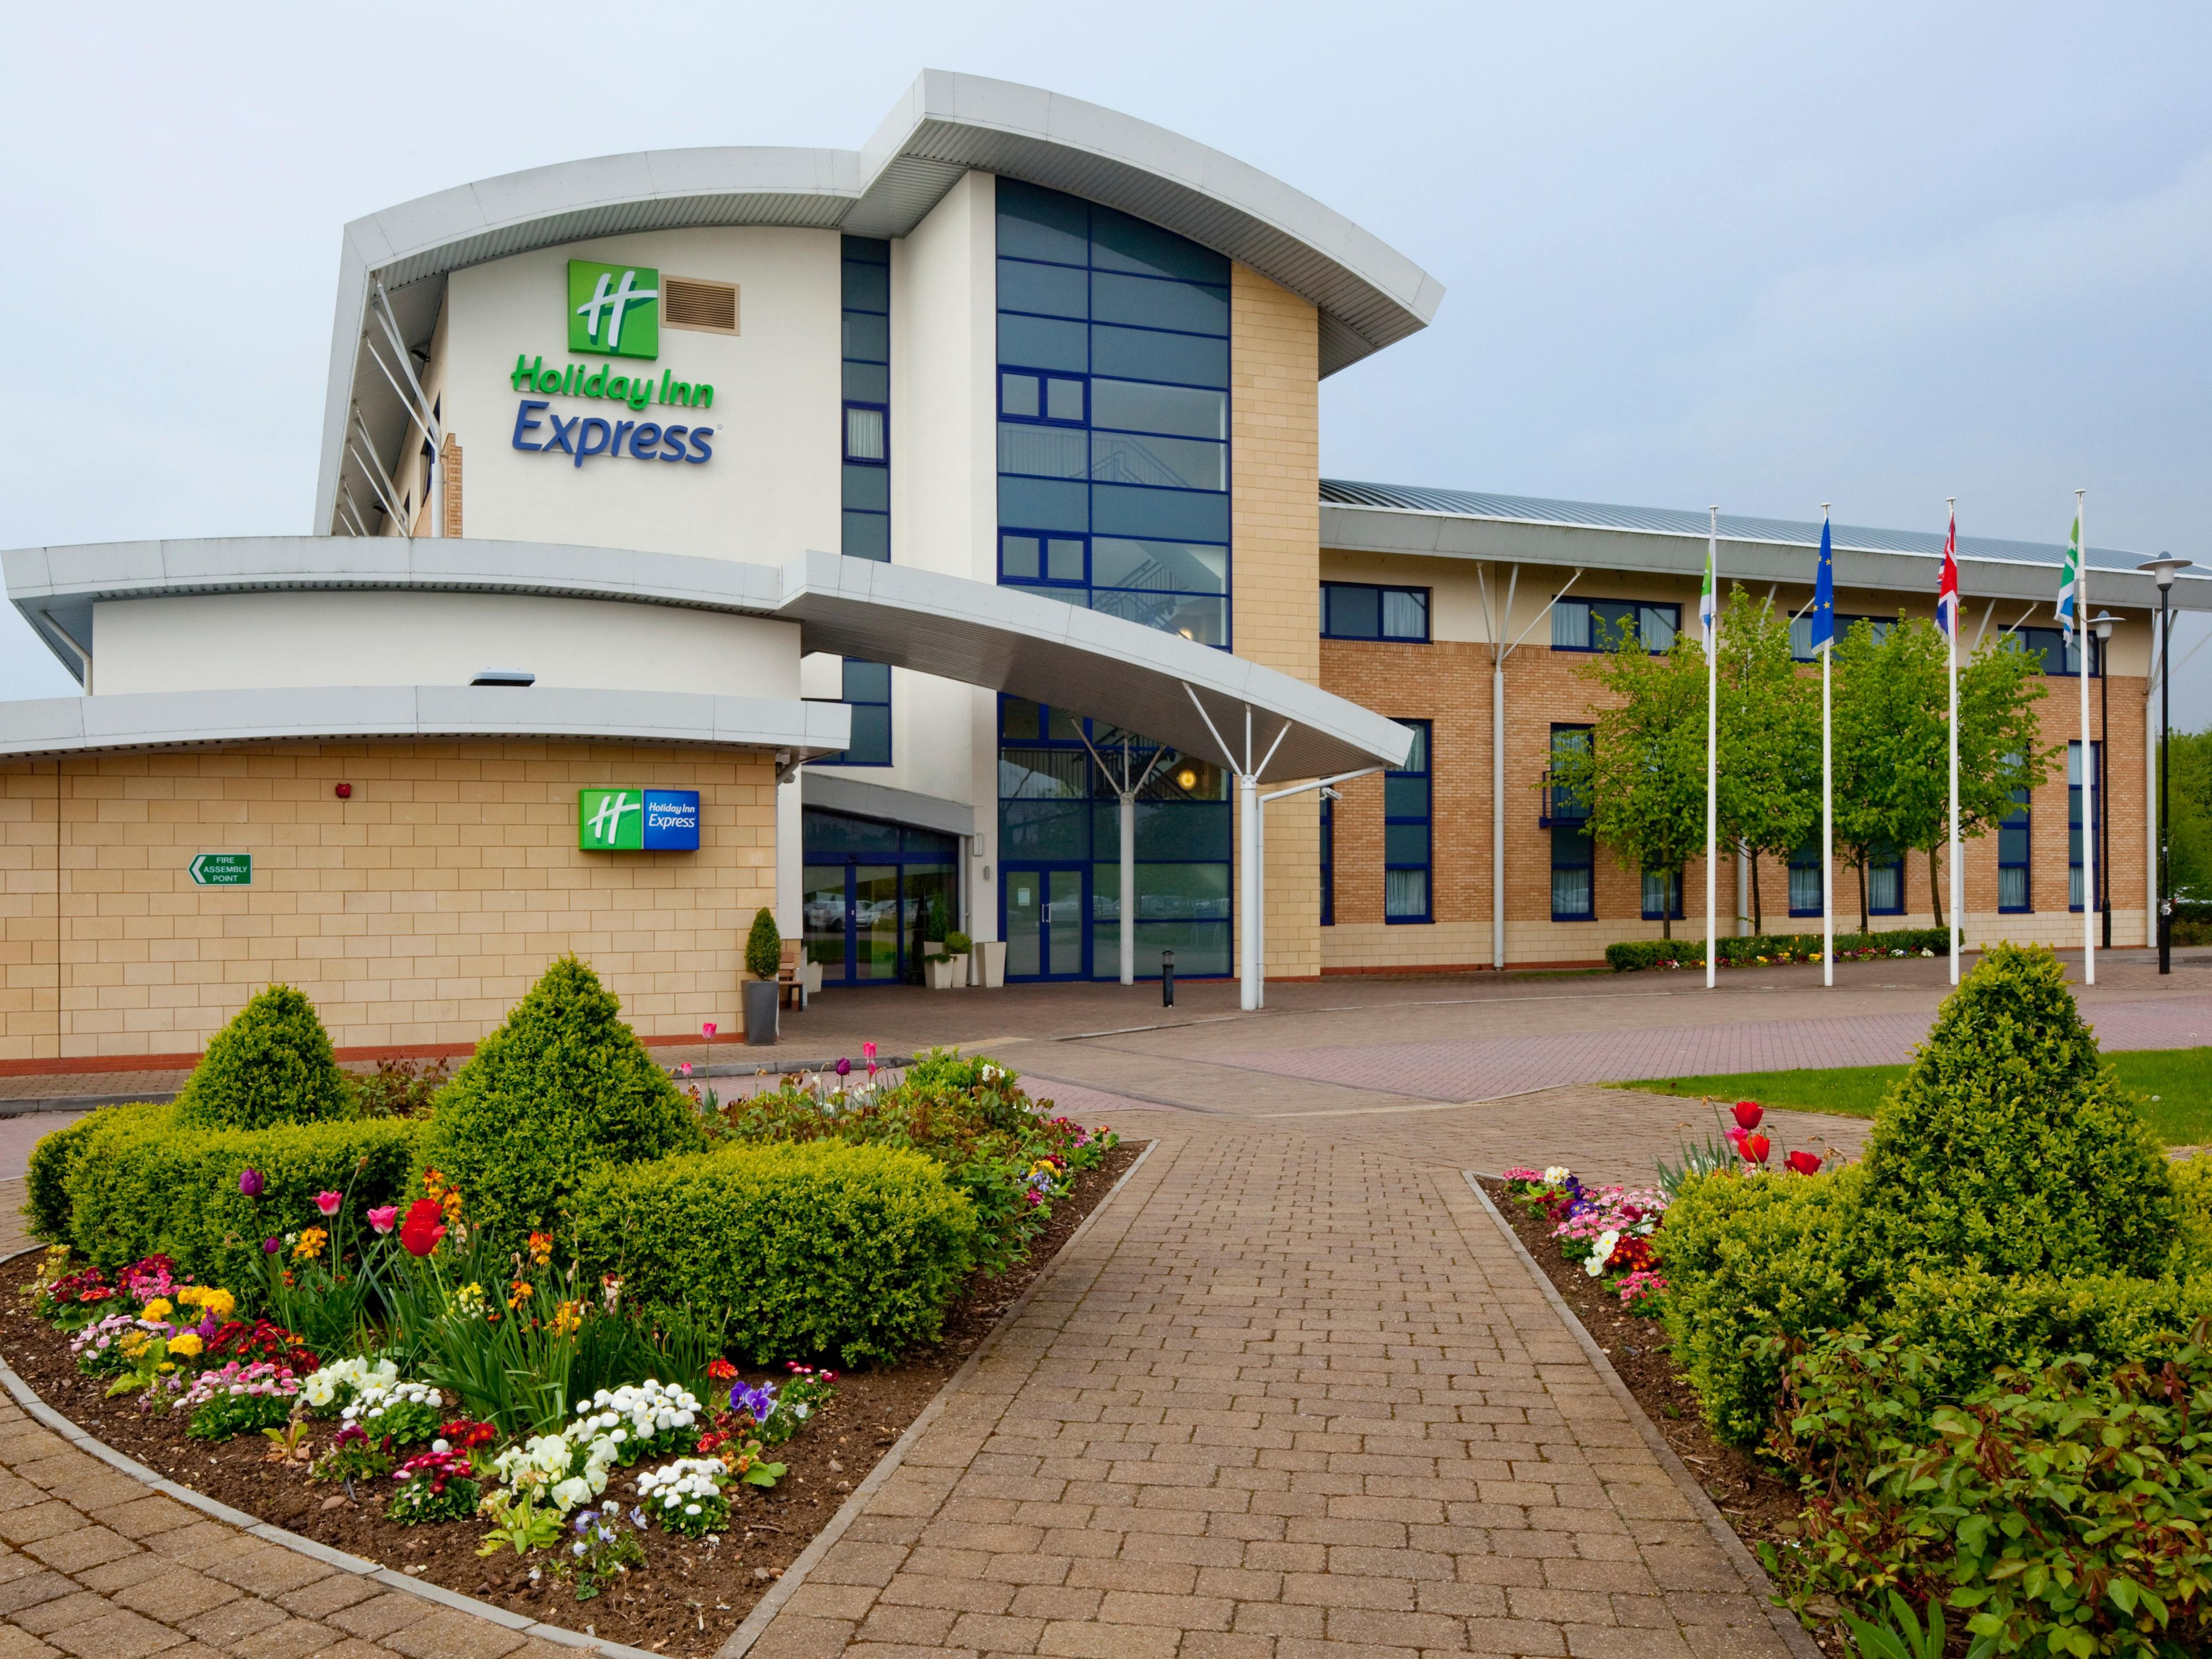 Welcome to Holiday Inn Express Northampton M1, Jct 15